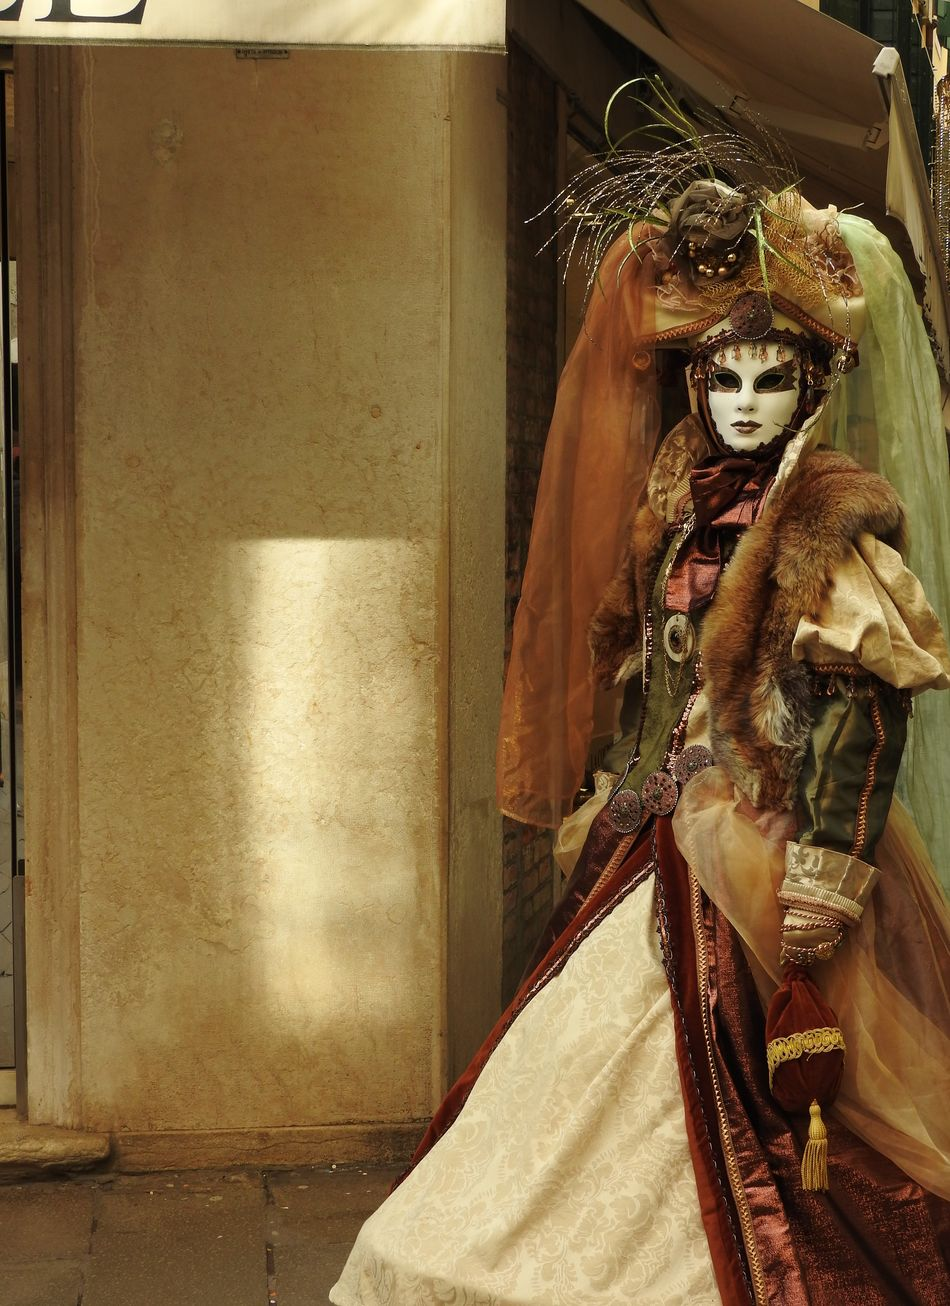 Carnival Carnival Spirit Carnival Time Clothes Culture Culture And Tradition Dress Dressed Up Girl Mask Mask - Disguise Masked Old Dress People Period Costume Person Personal Style Sun Sun Reflection Tradition Traditional Clothing Venice Carnival Venice Italy Venice, Italy